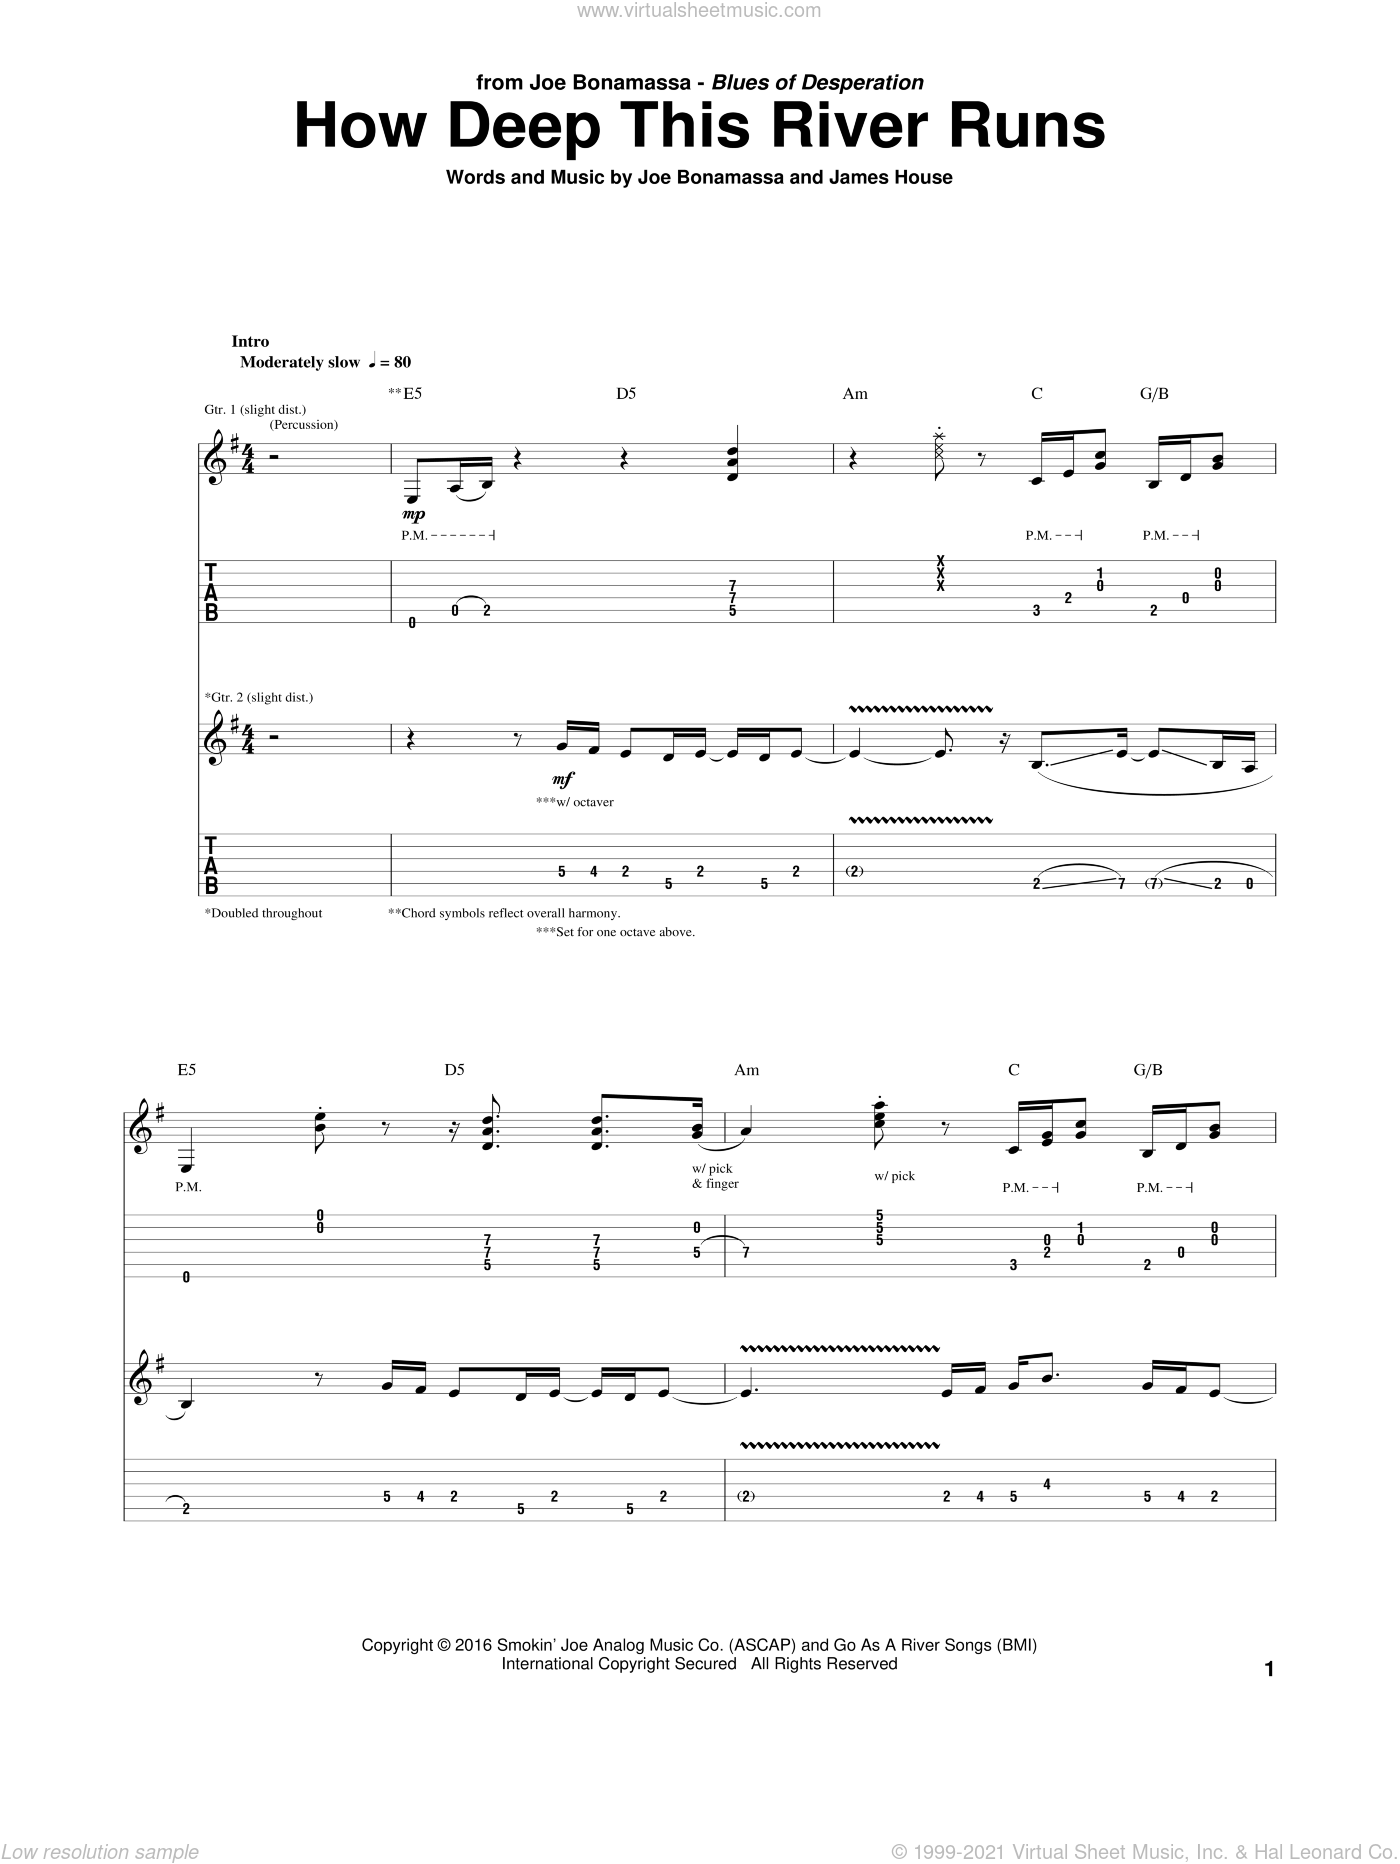 How Deep This River Runs sheet music for guitar (tablature) by James House and Joe Bonamassa. Score Image Preview.